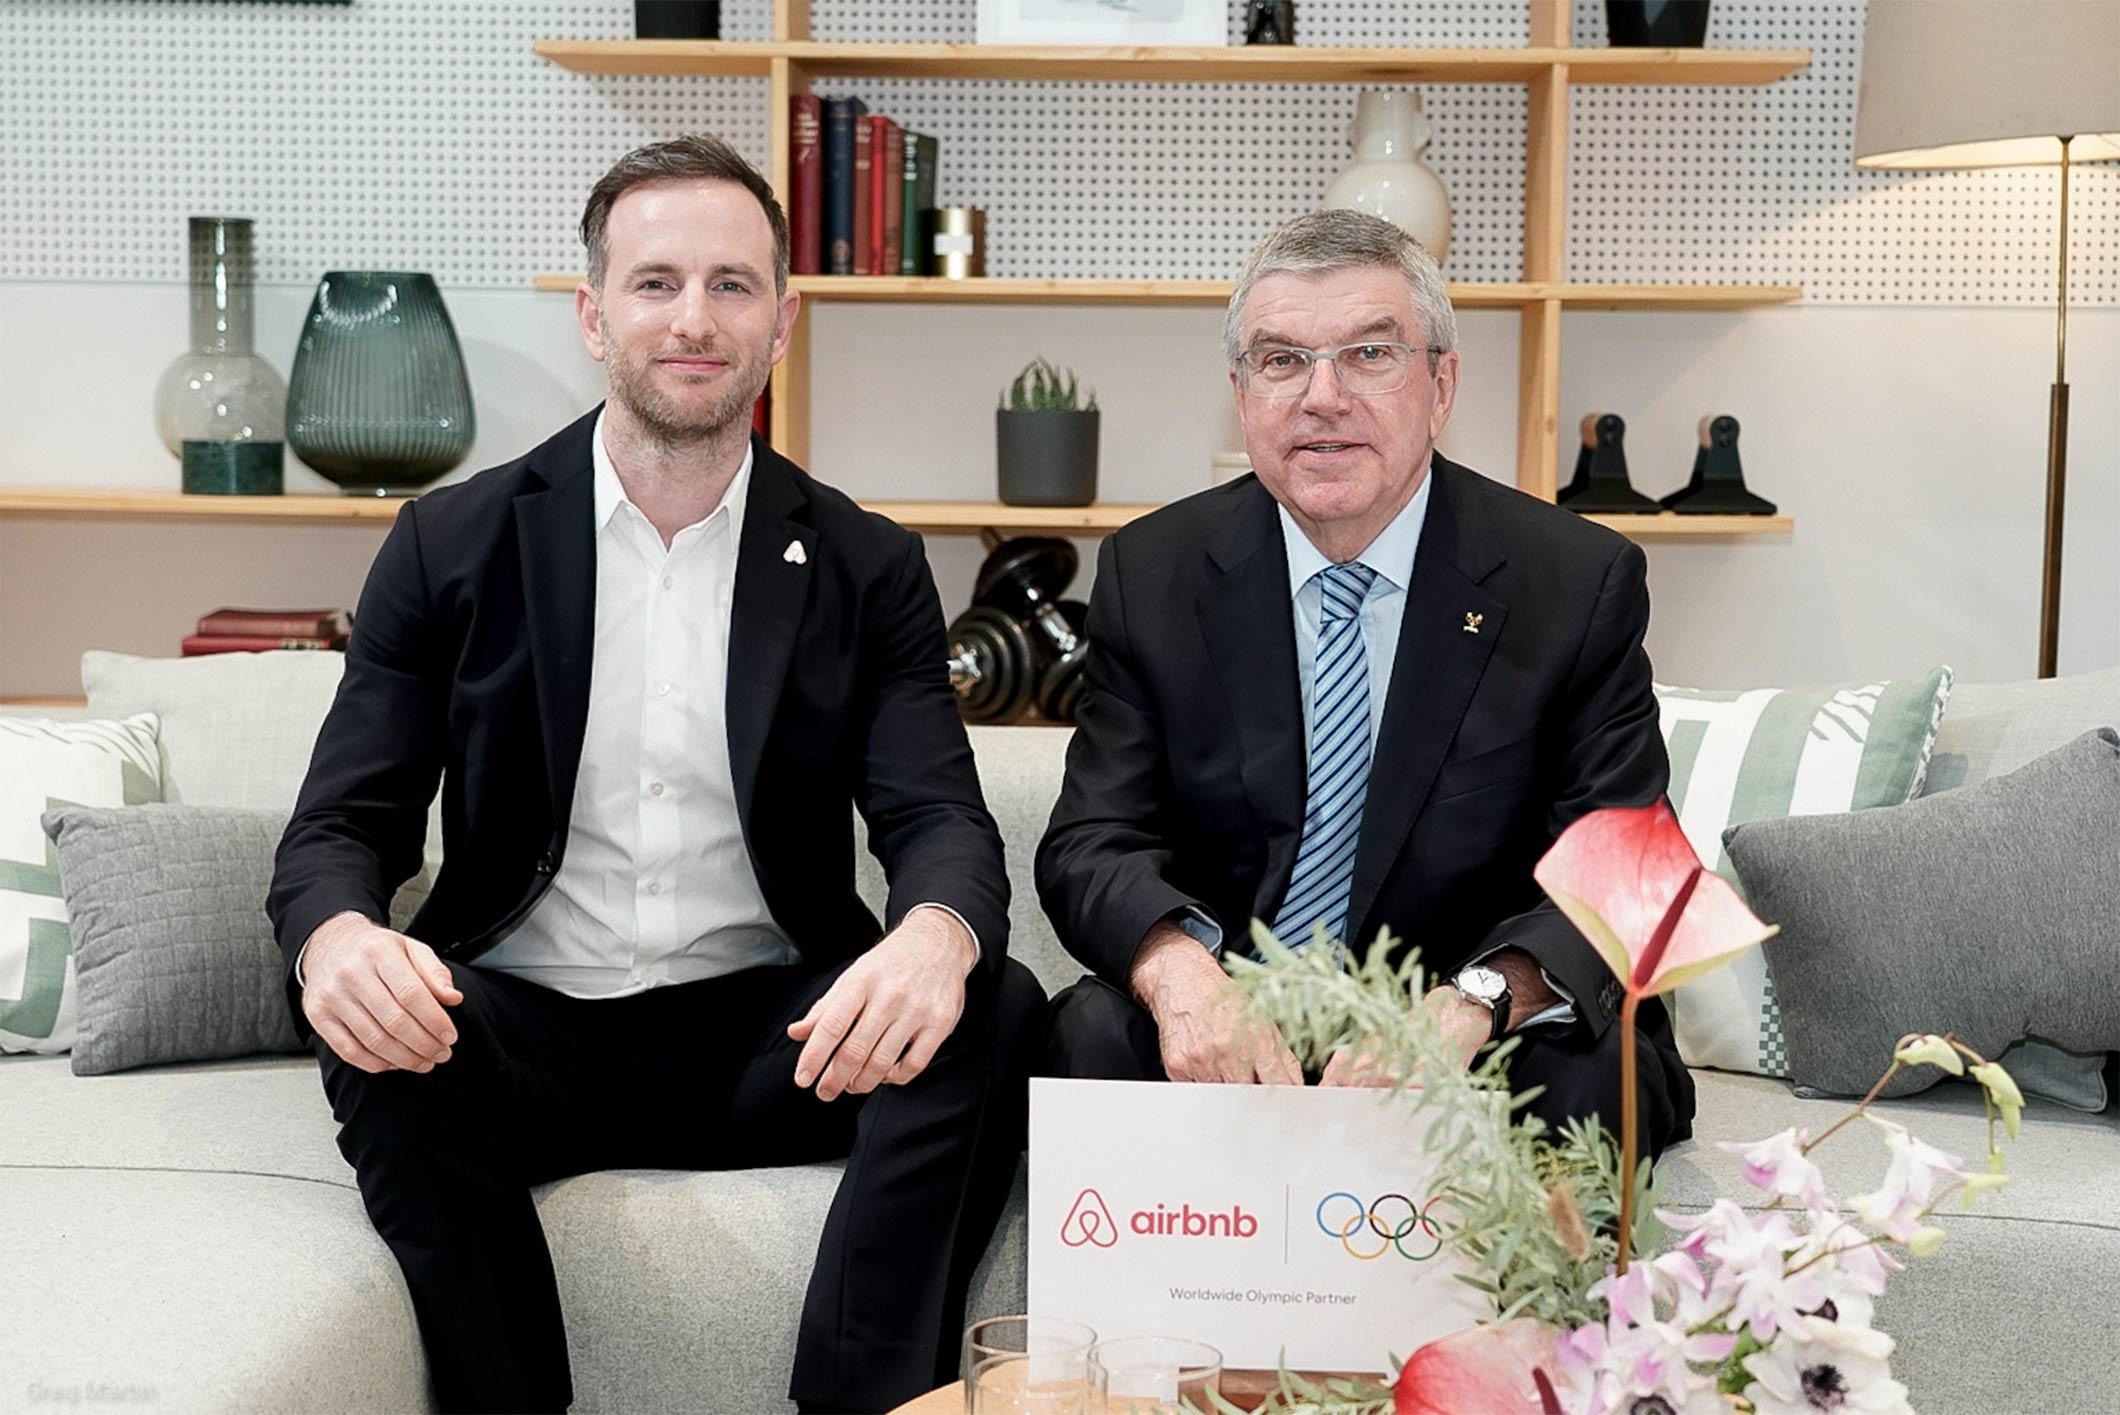 Airbnb Co-Founder Joe Gebbia and IOC President Thomas Bach